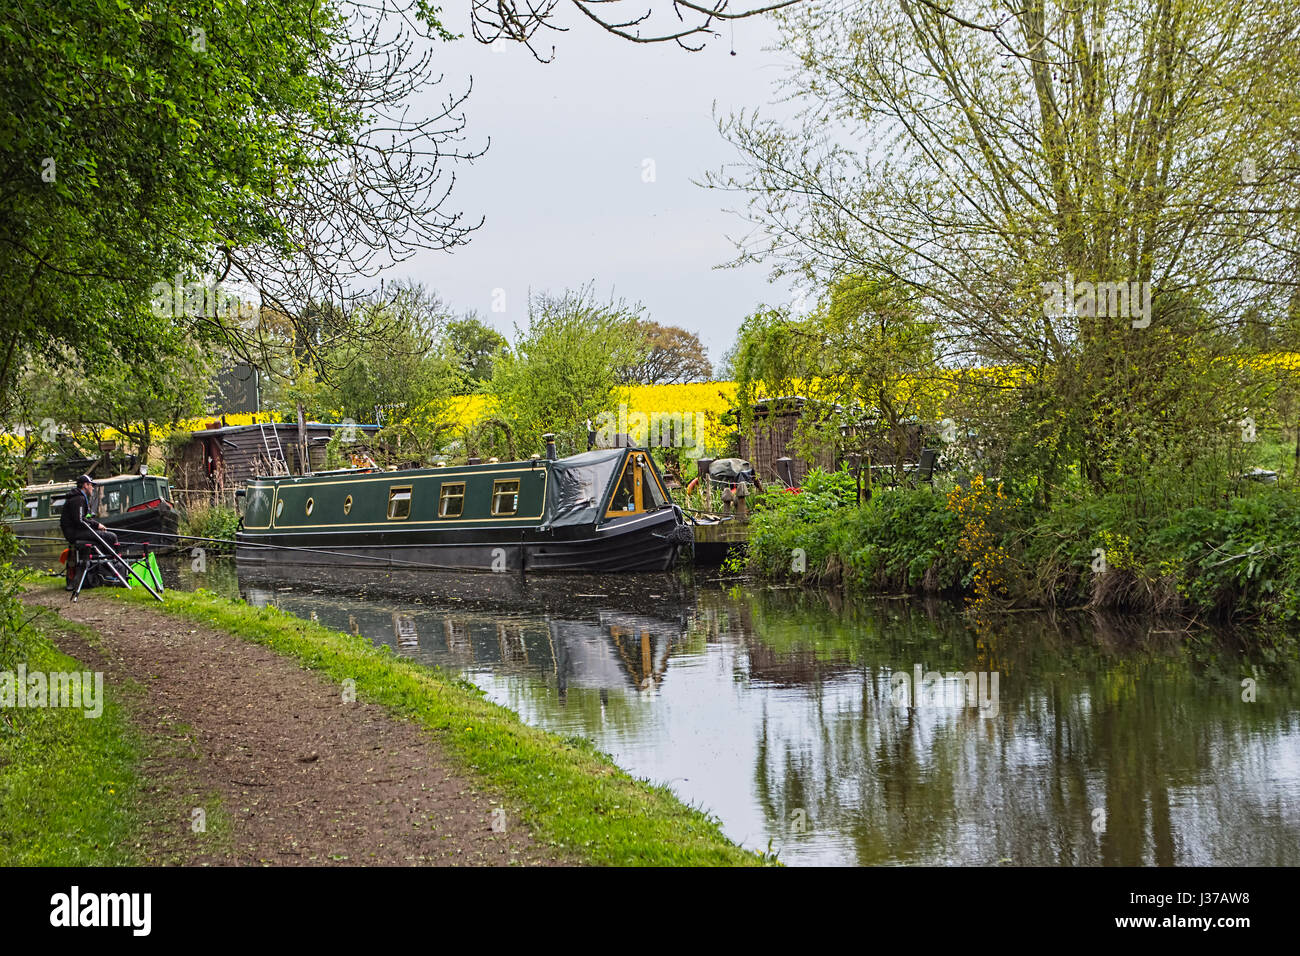 Staffordshire to Worcestershire canal. Stock Photo